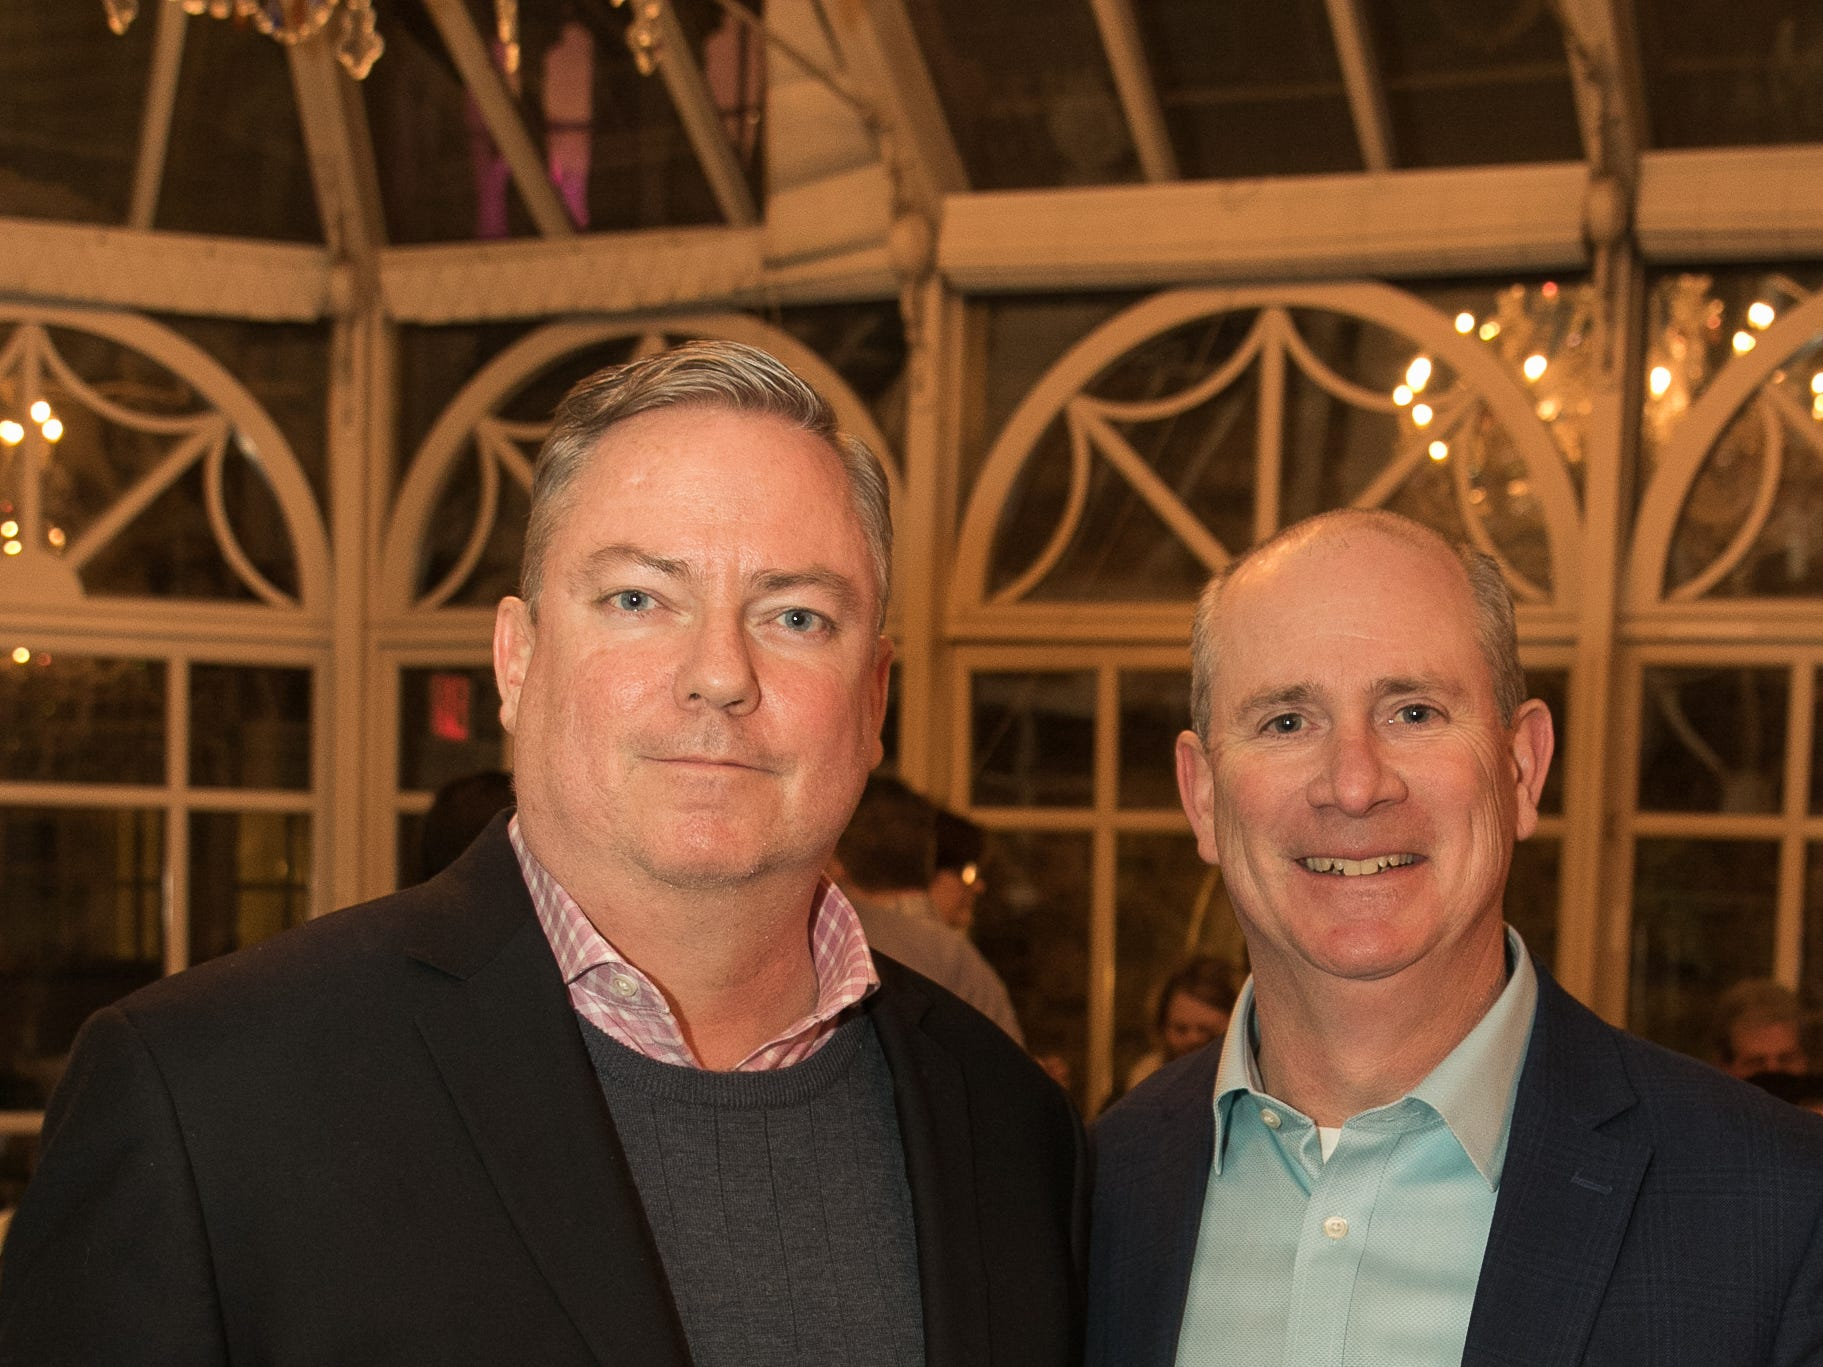 Brendan Buckley, John Olert. Rebuilding Together North Jersey held its third annual Beefsteak Dinner with former NY Giants Howard Cross, Amani Toomer, and Sam Garnes at the Brownstone in Paterson. 03/07/2019